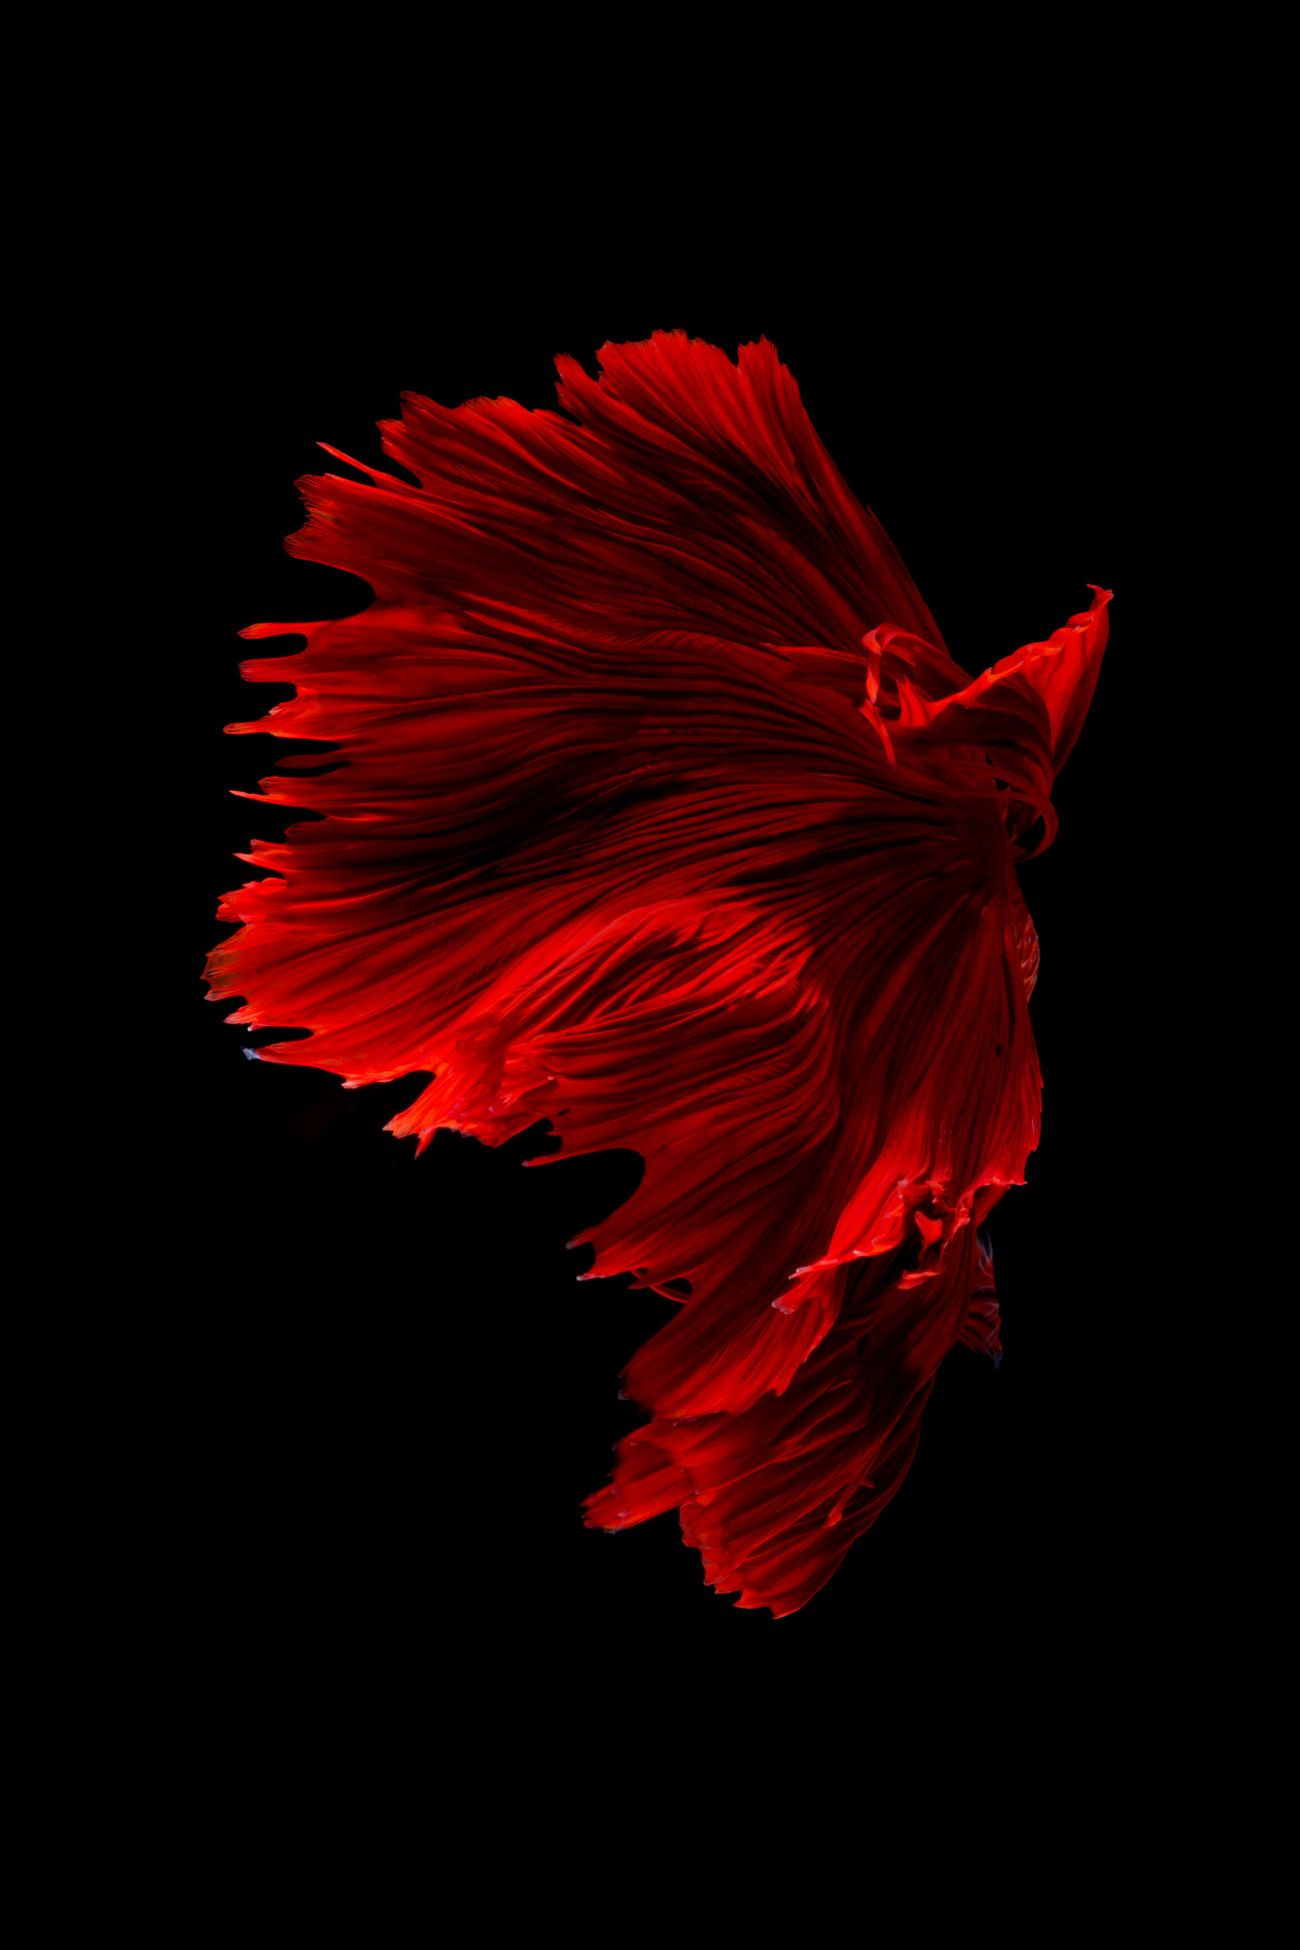 Download Red And Gray Wallpaper Gallery: Red Half-moon Siamese Fighting Fish Over Black Background